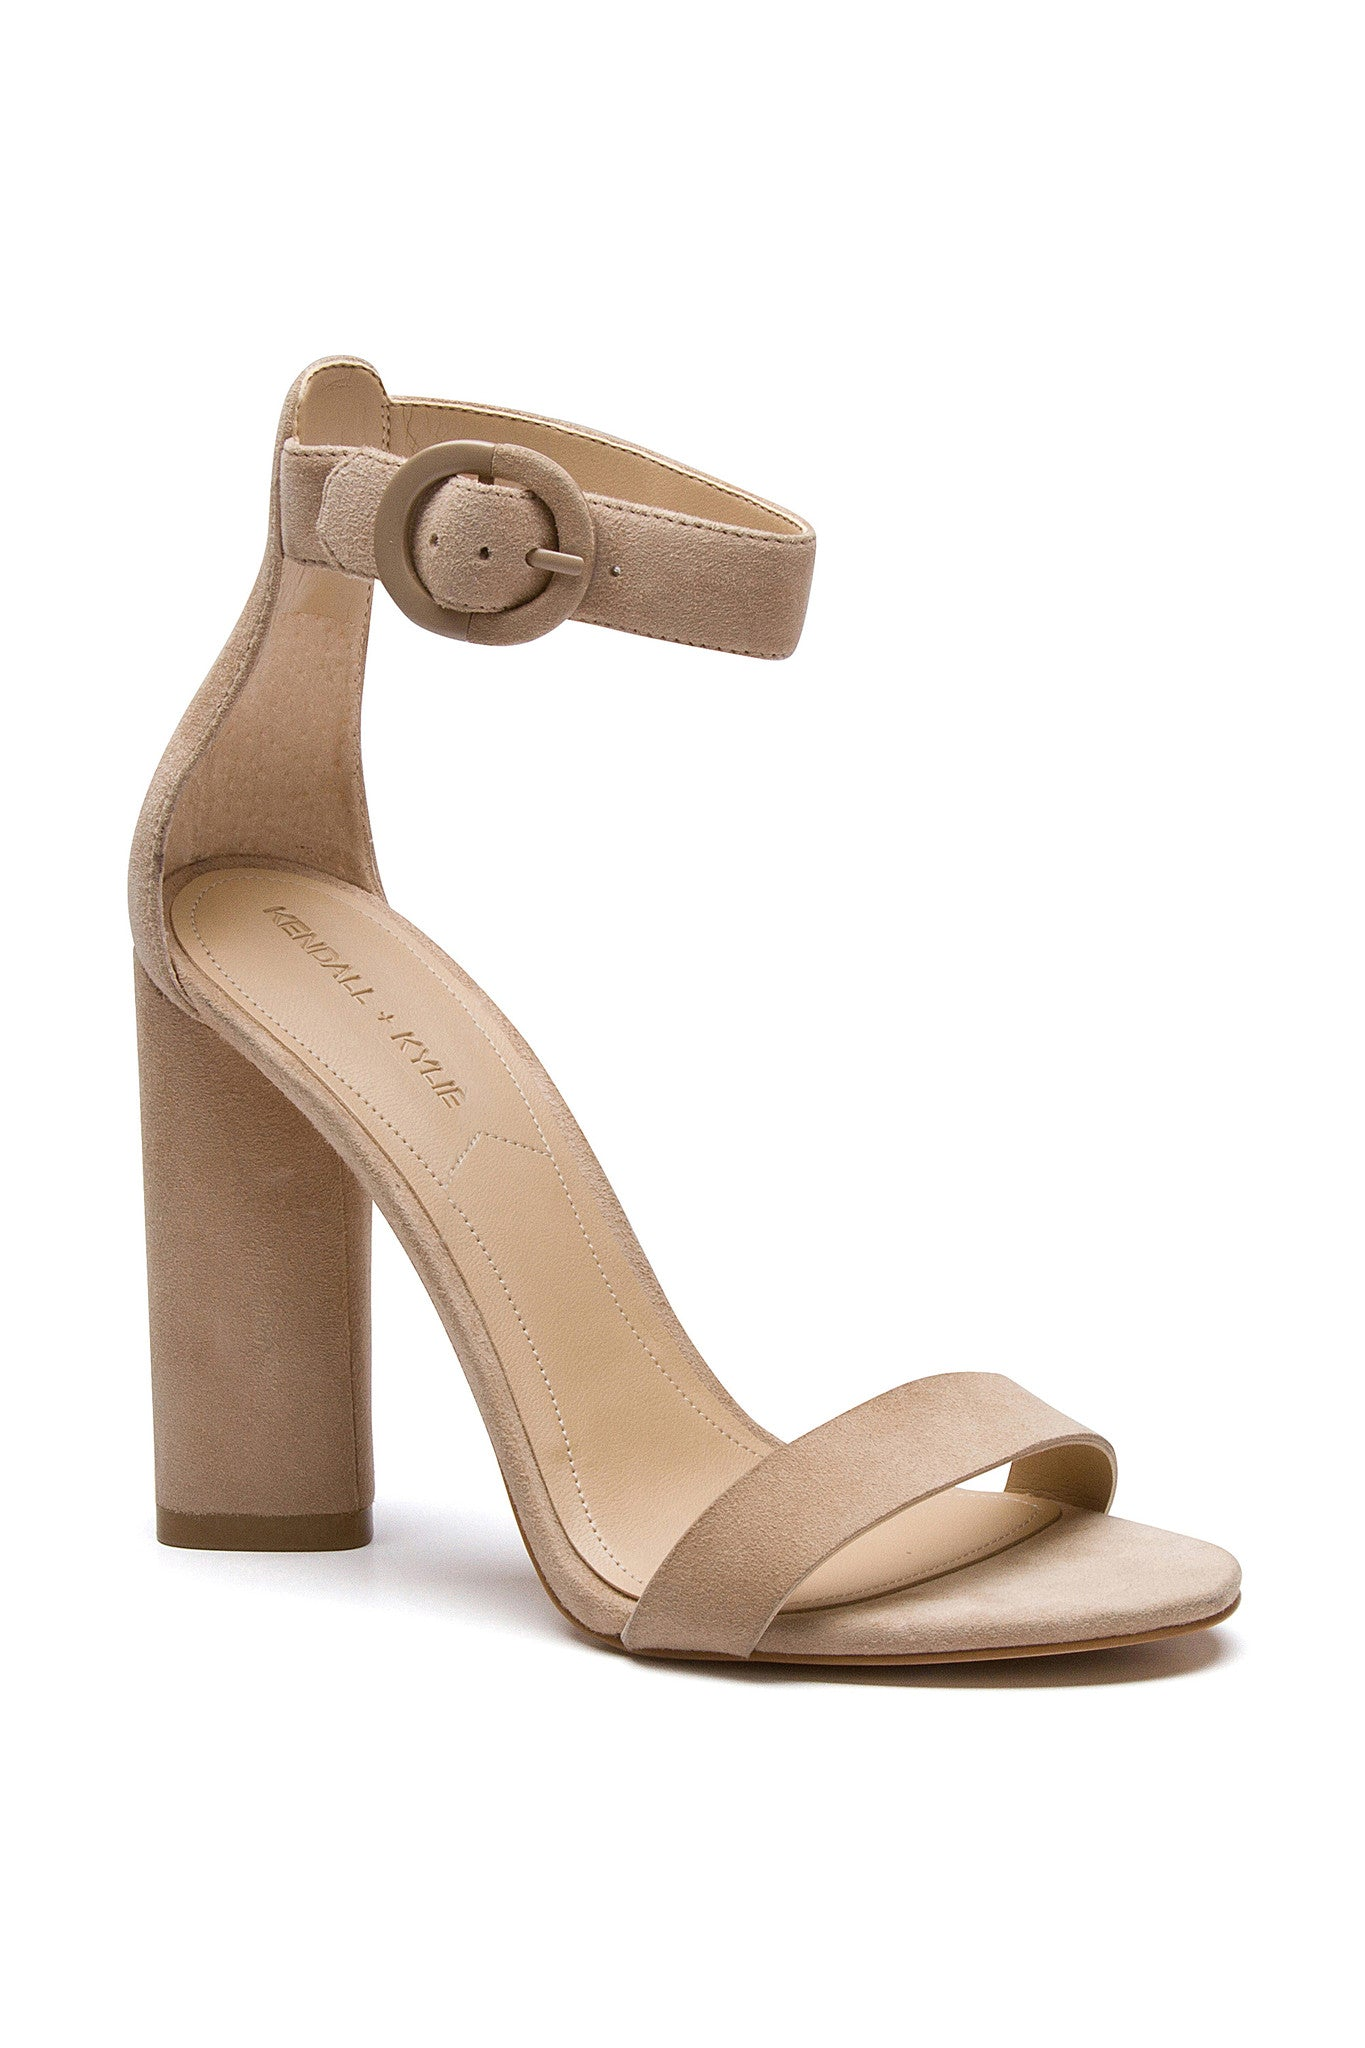 GISELLE LIGHT NATURAL SUEDE SANDAL